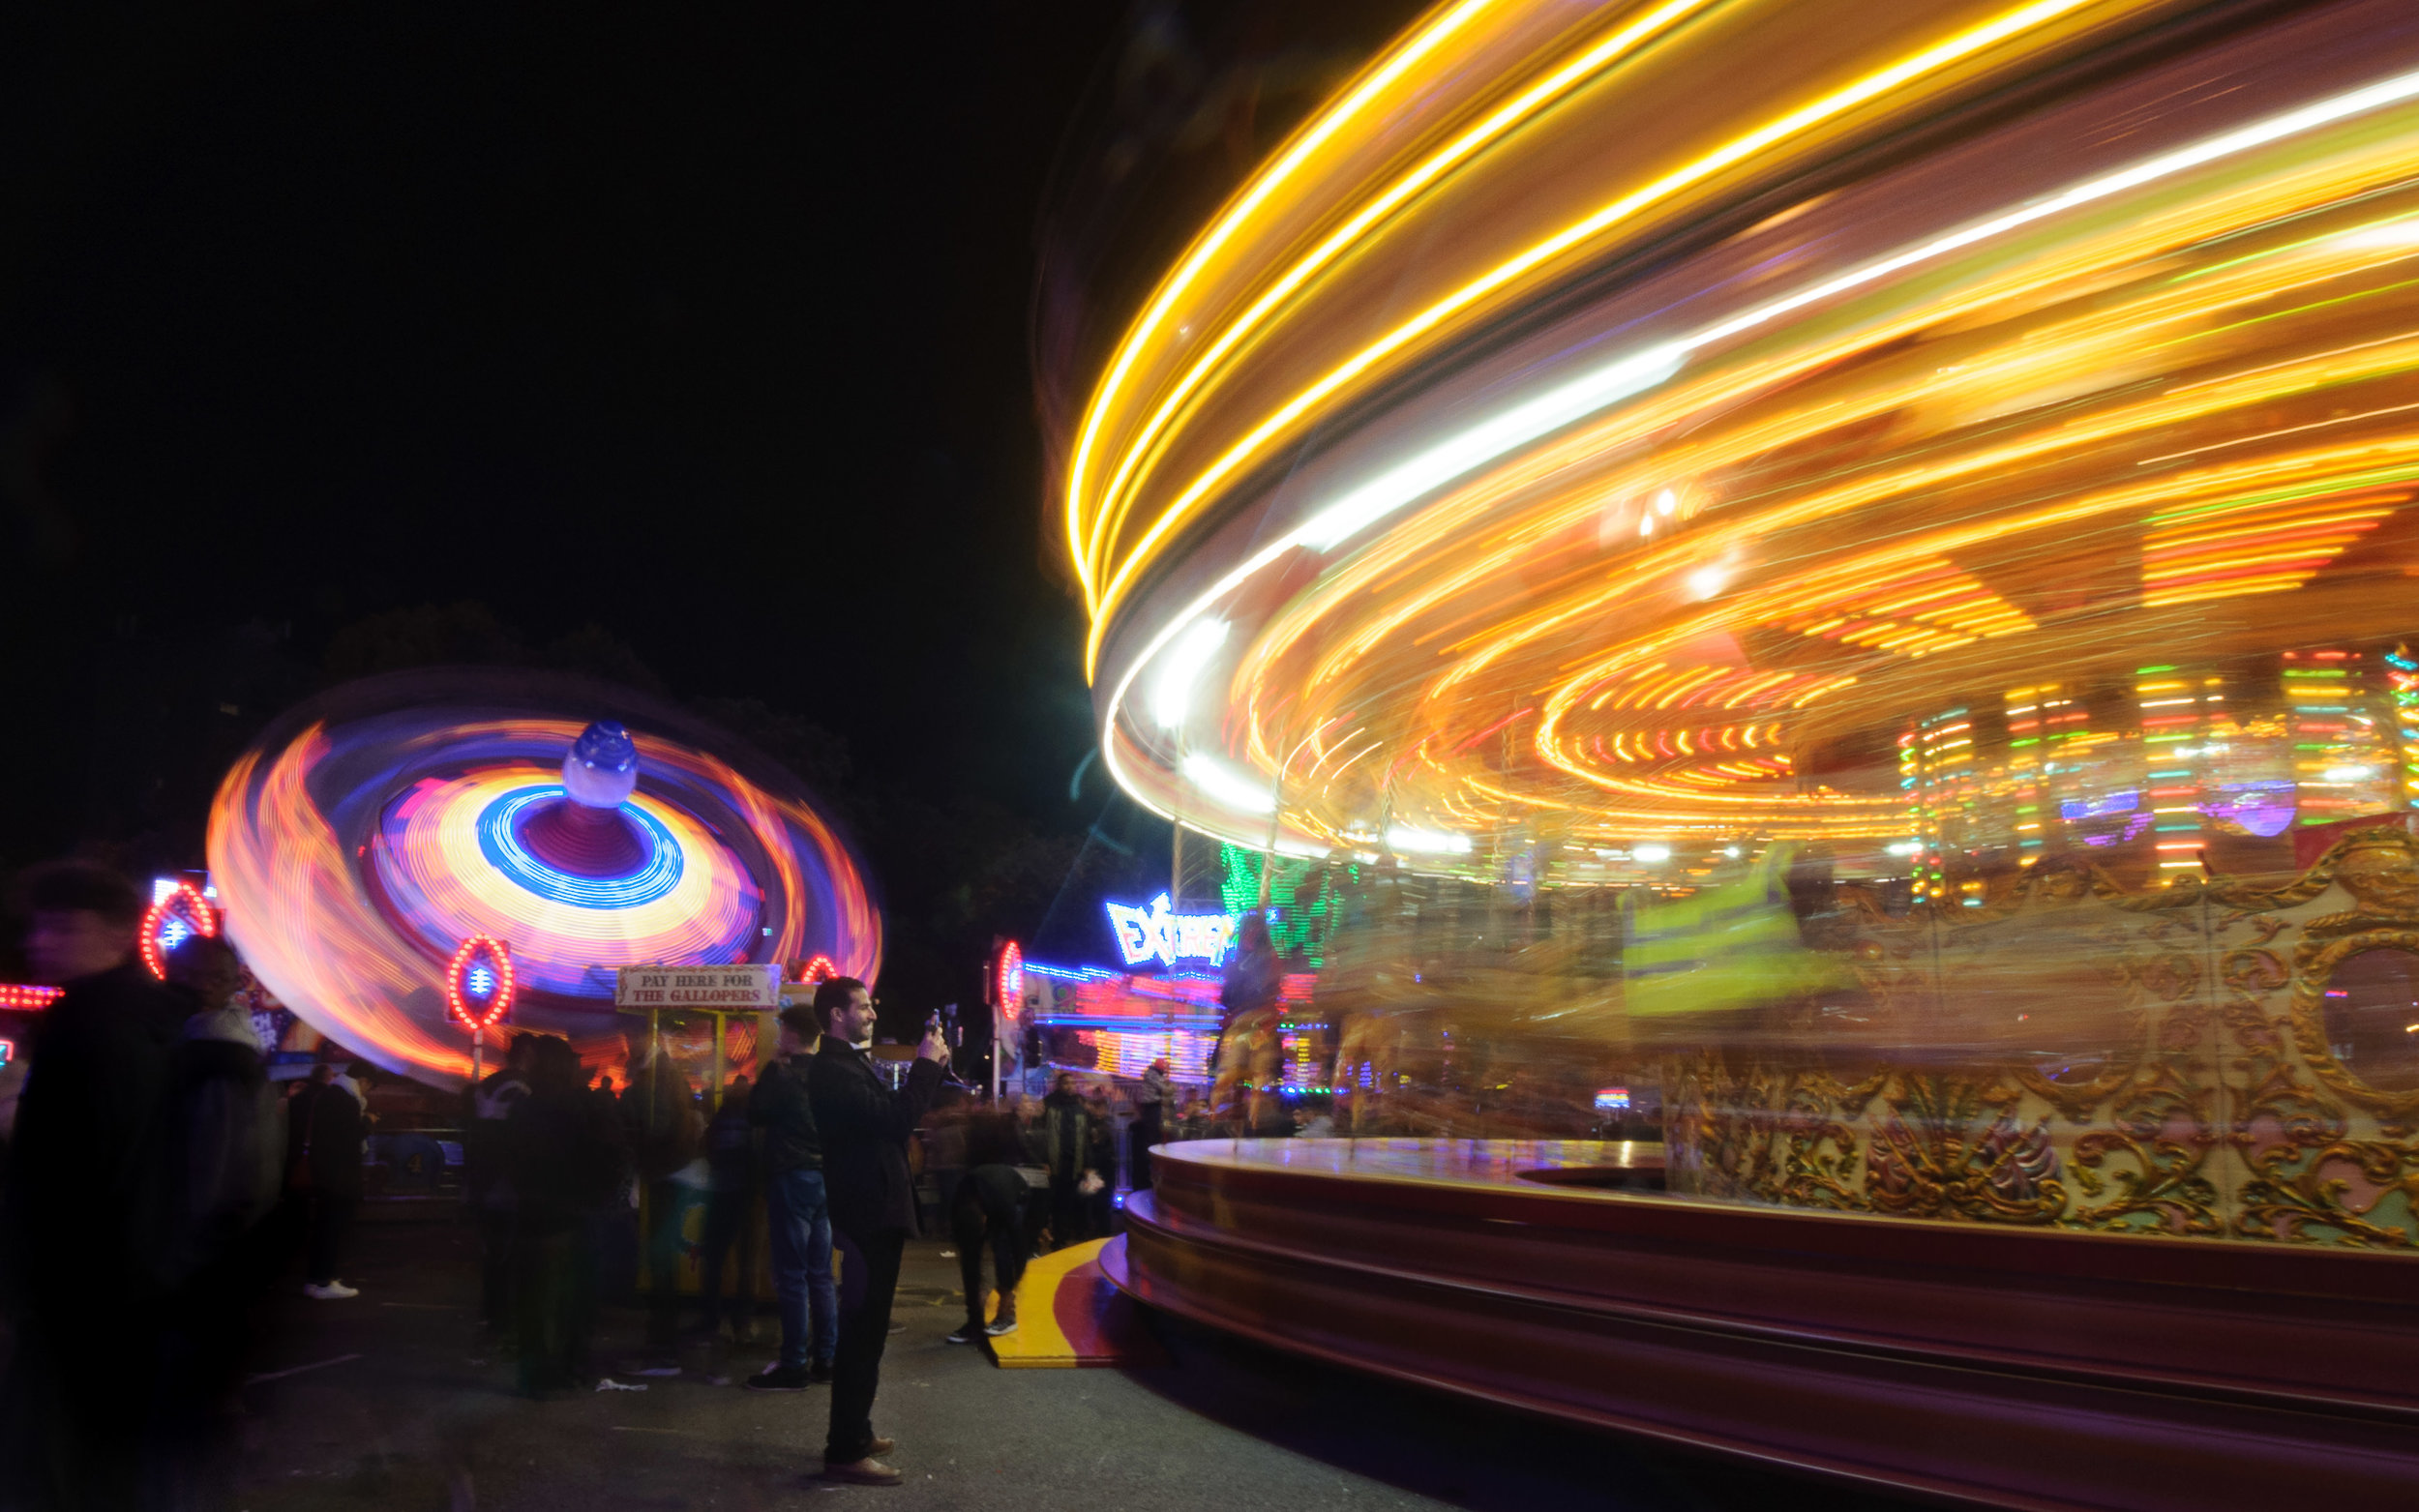 Nottingham's Goose fair always provides amazing spectacles - we LOVE the colours and the lights!